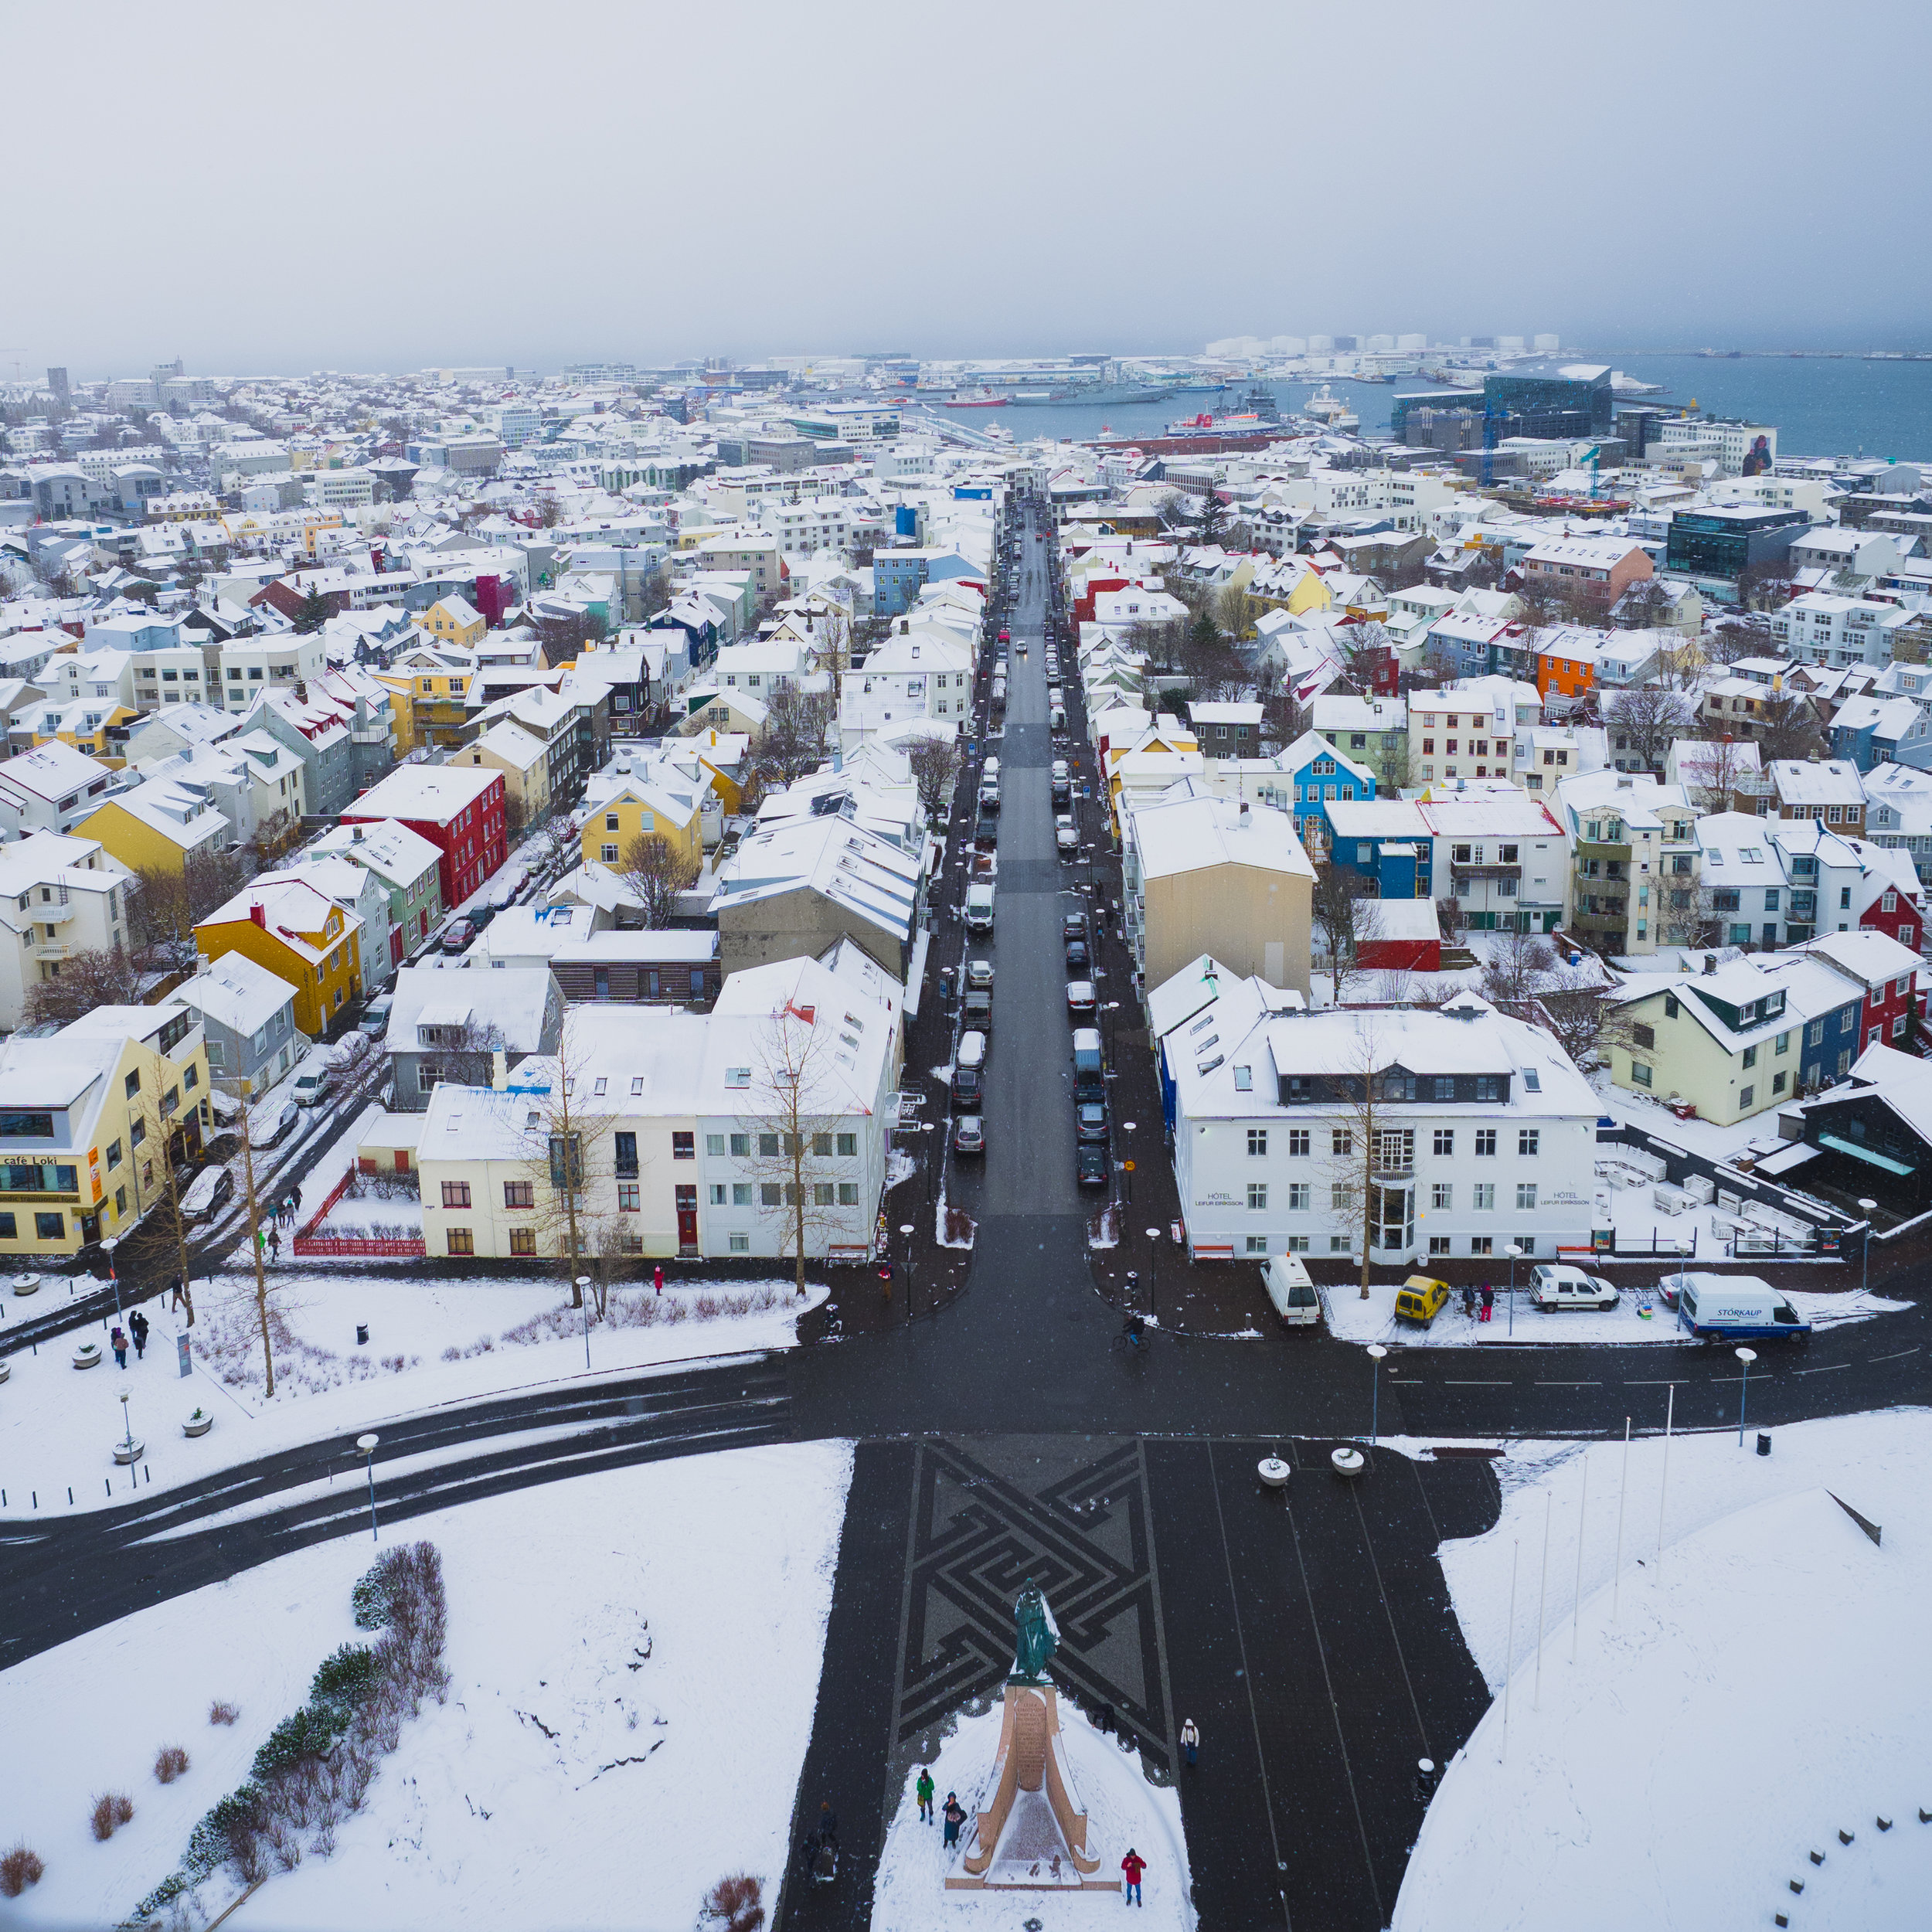 view of the city from the top of hallgrímskirkja.